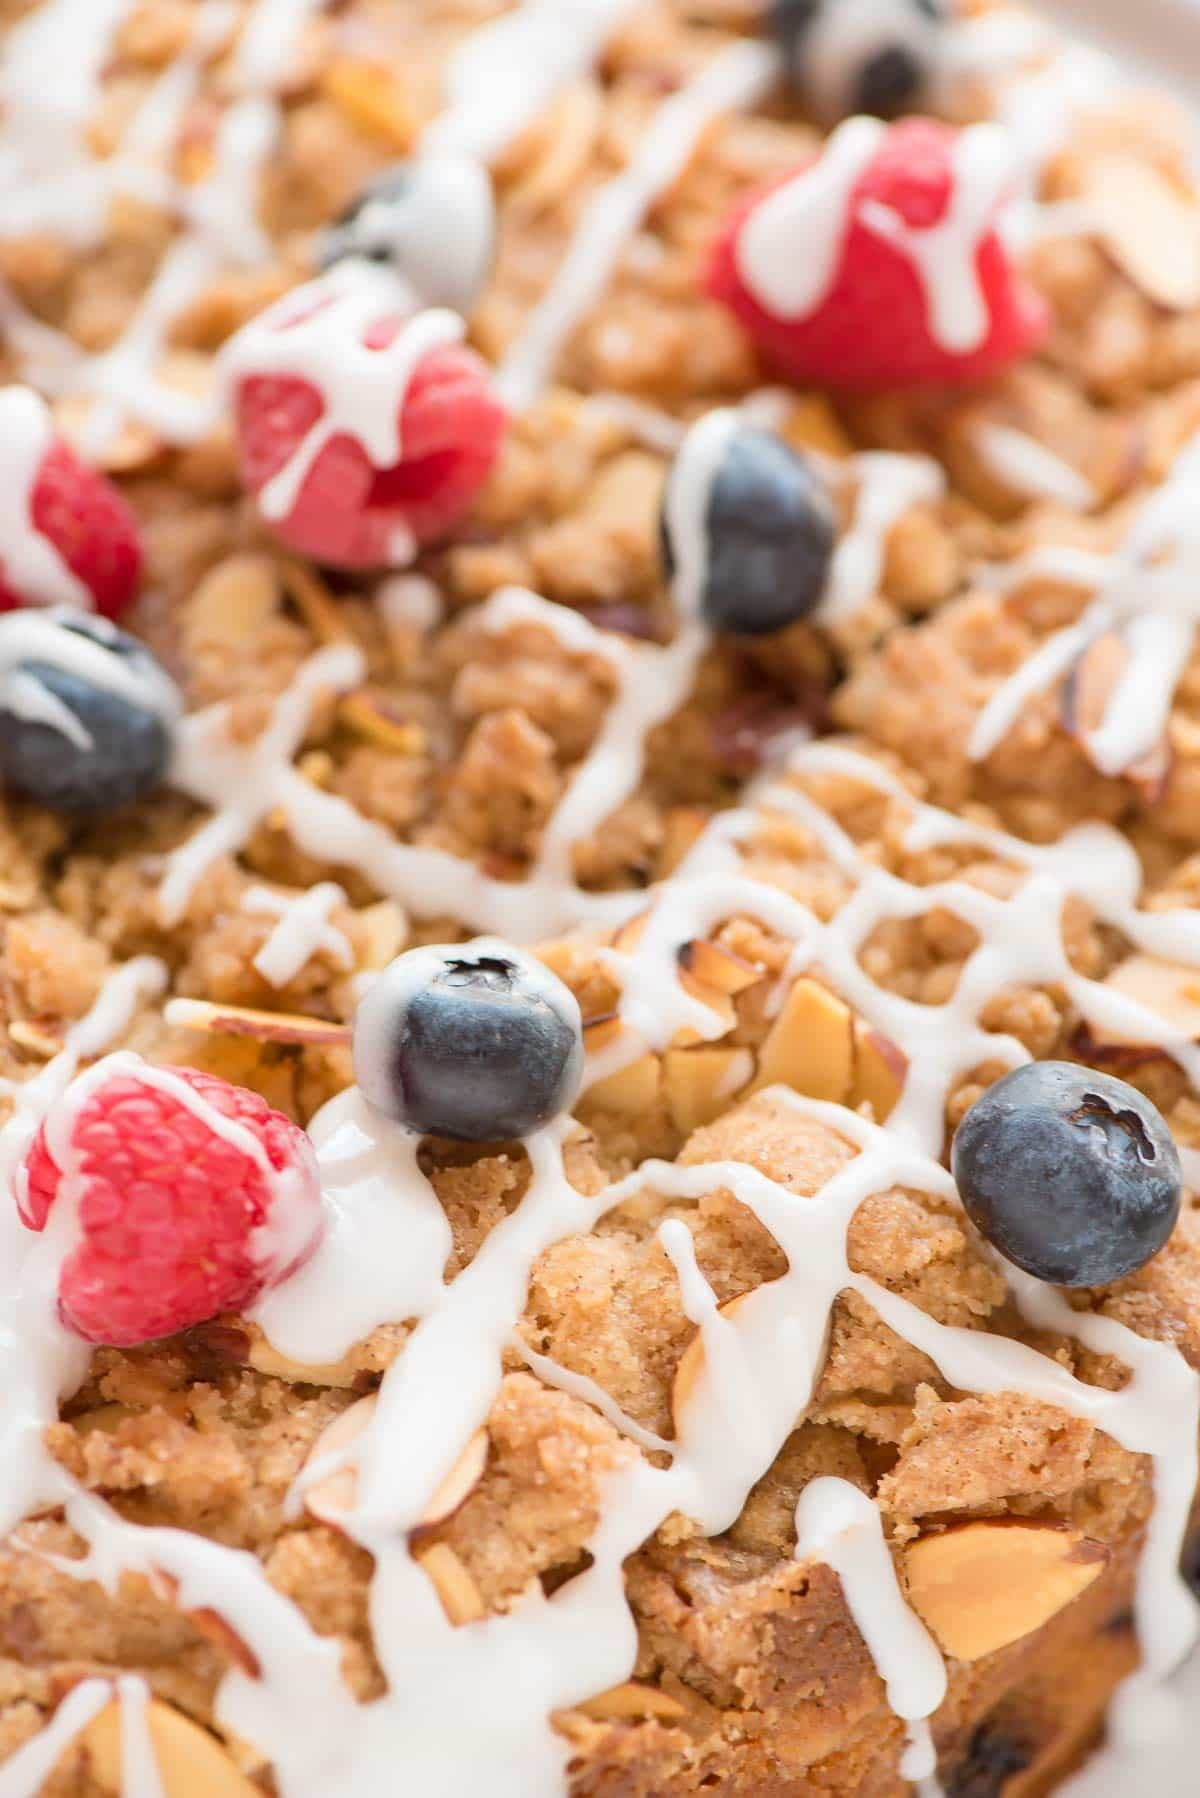 This Berry Crumb Cake recipe is perfect for brunch! It has TONS of buttery crumbs, the cake is so soft and moist, and you get a blueberry in every bite. @wellplated